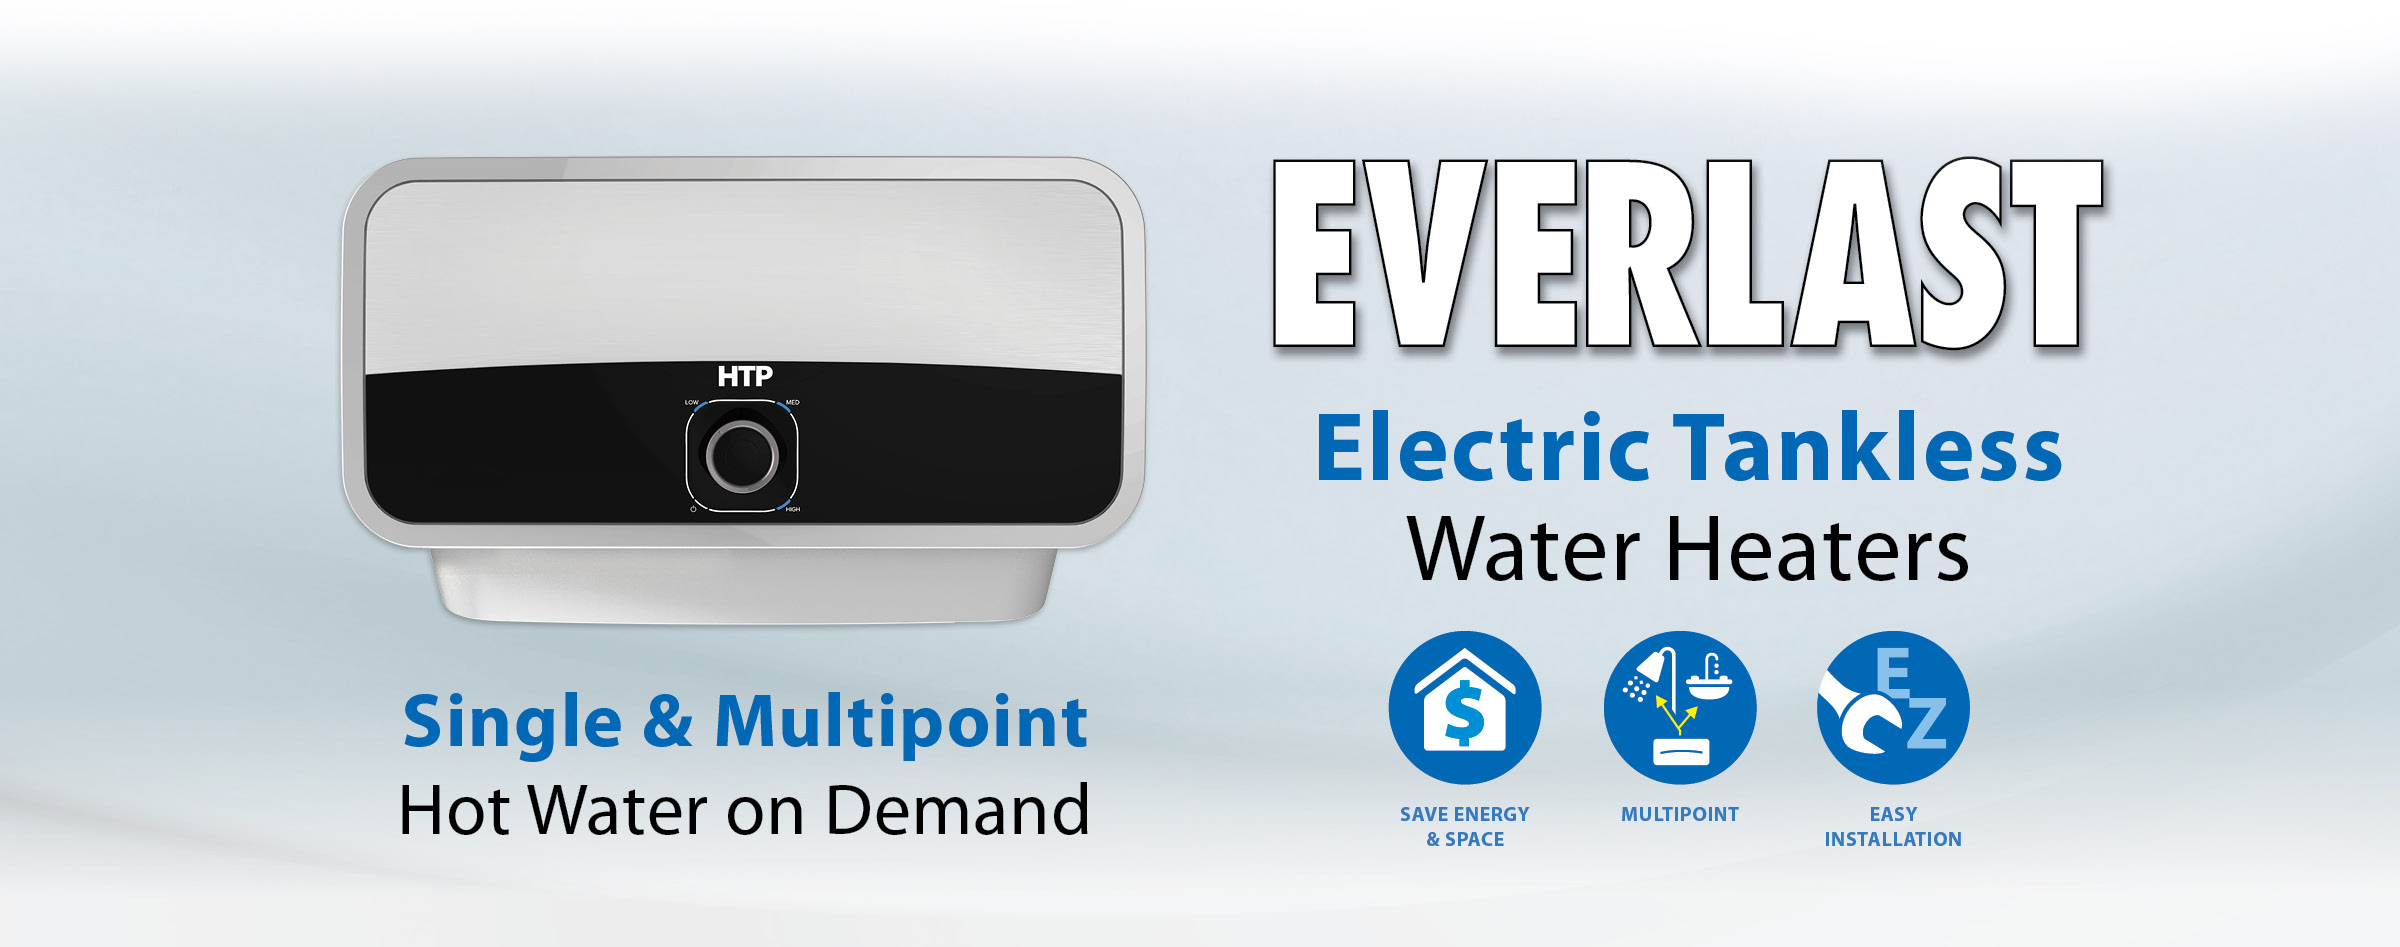 Everlast Single & Multipoint Electric Tankless Water Heater